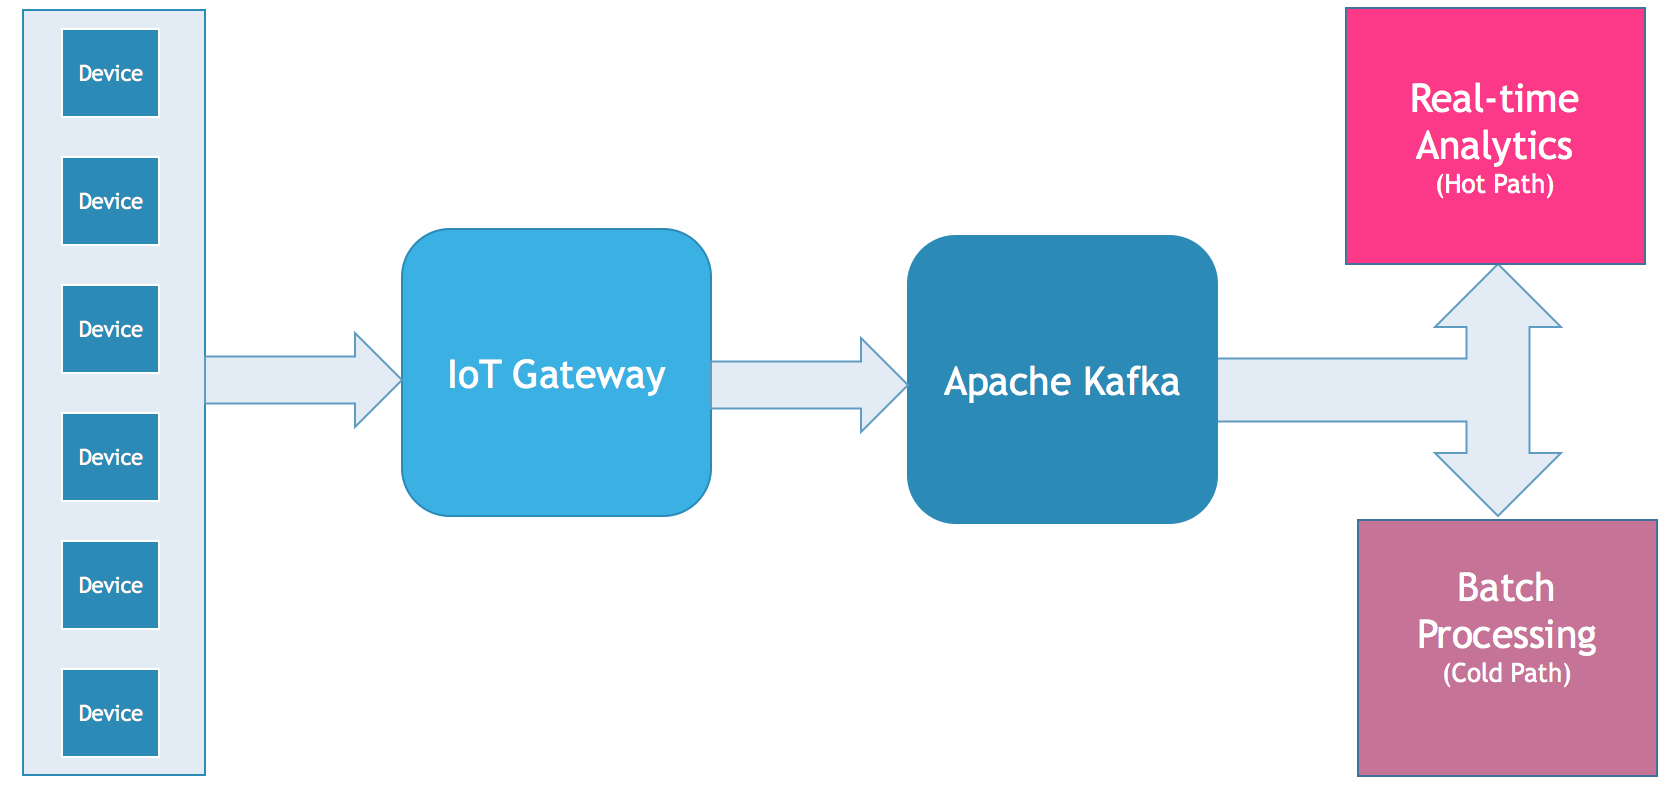 Apache Kafka: The Cornerstone of an Internet-of-Things Data Platform